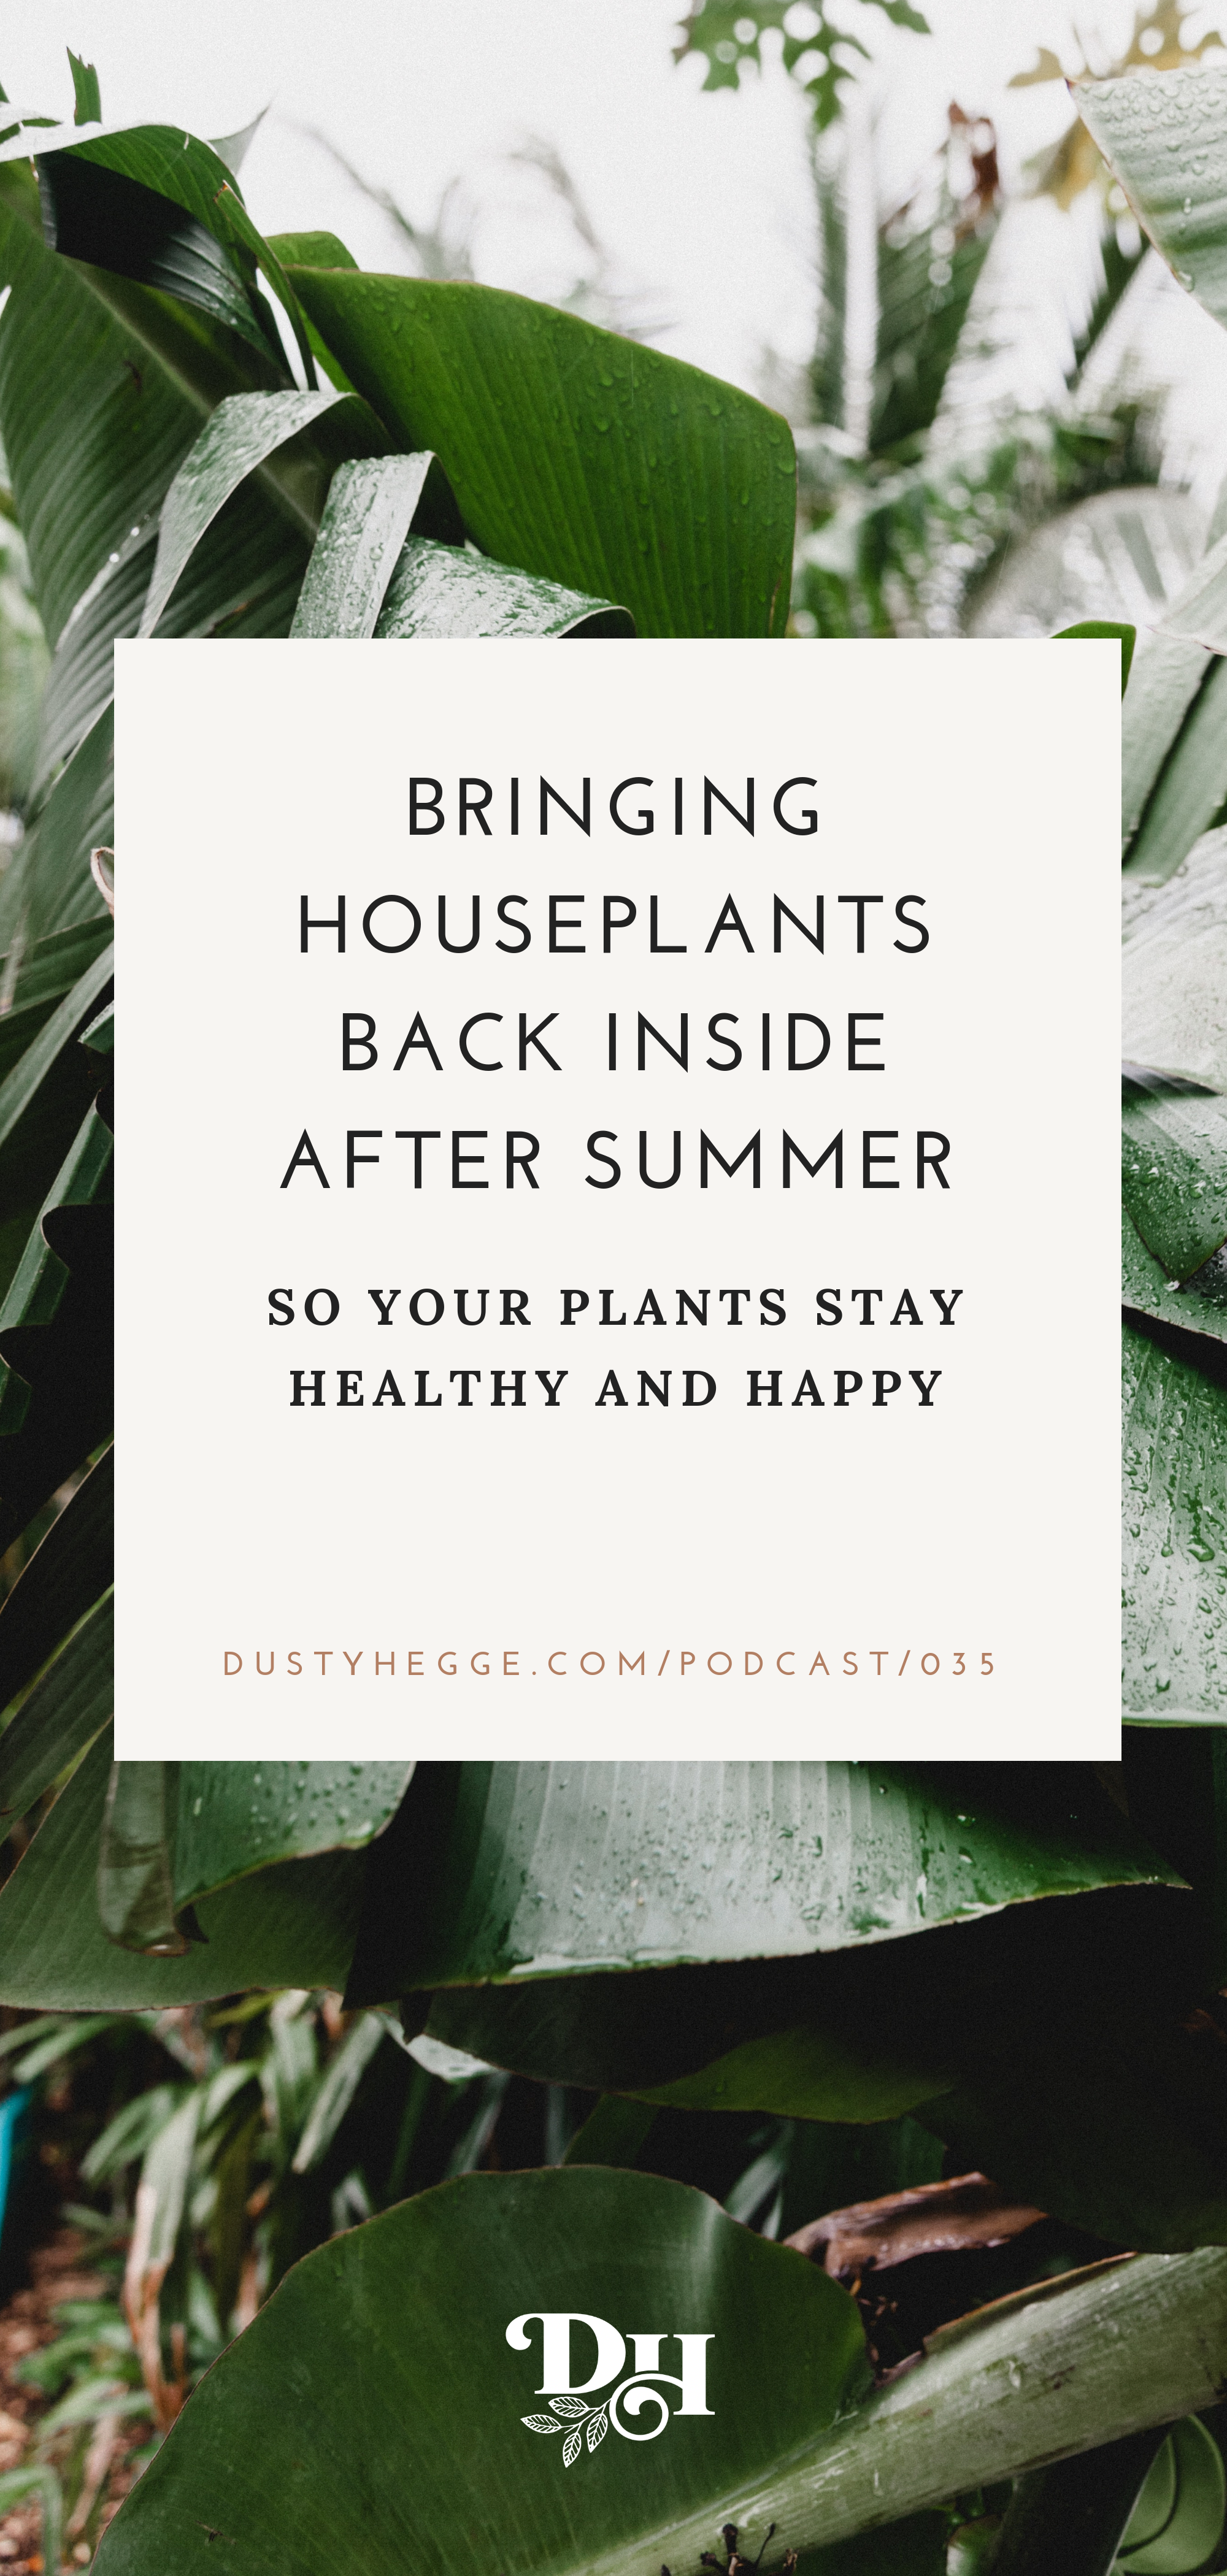 HOw to bring your houseplants back indoors after summer on Grow Well Podcast.png